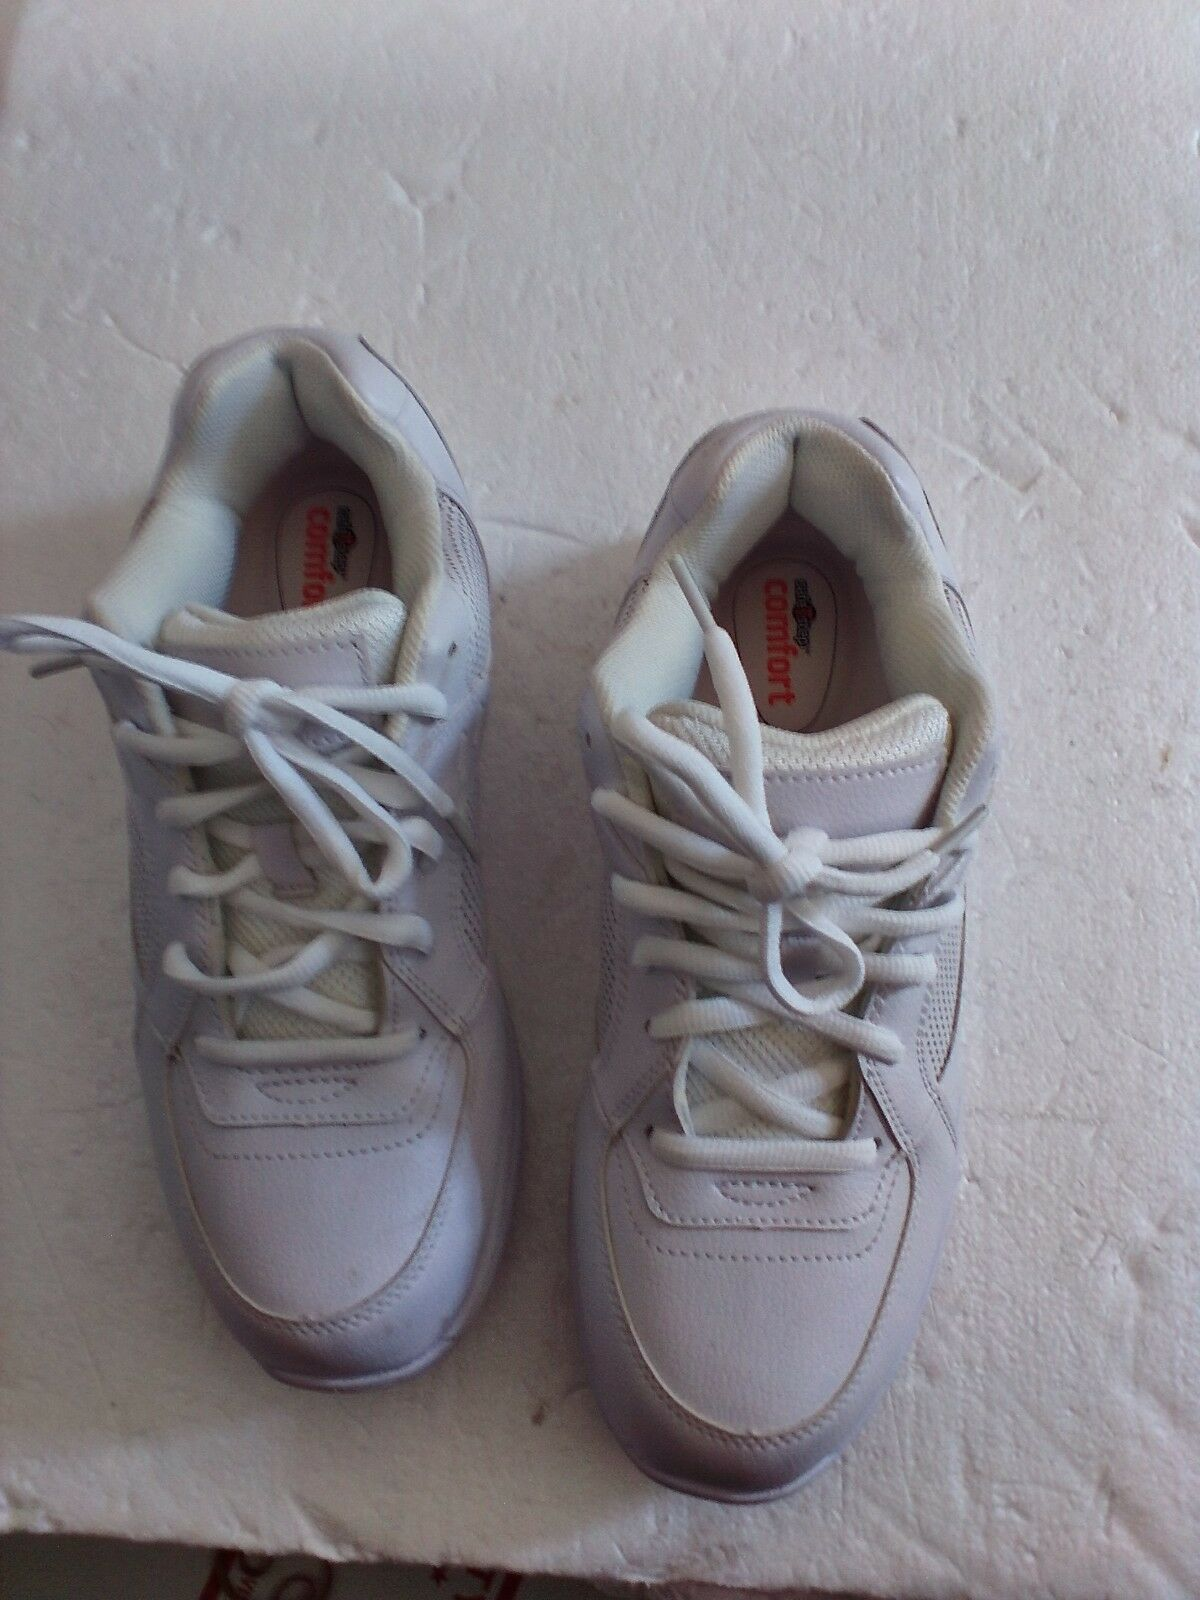 SAFETSTEP COMFORT SHOES 9 MENS WALKING SHOES WHITESIZE 9 SHOES 1/2 MED 19a158